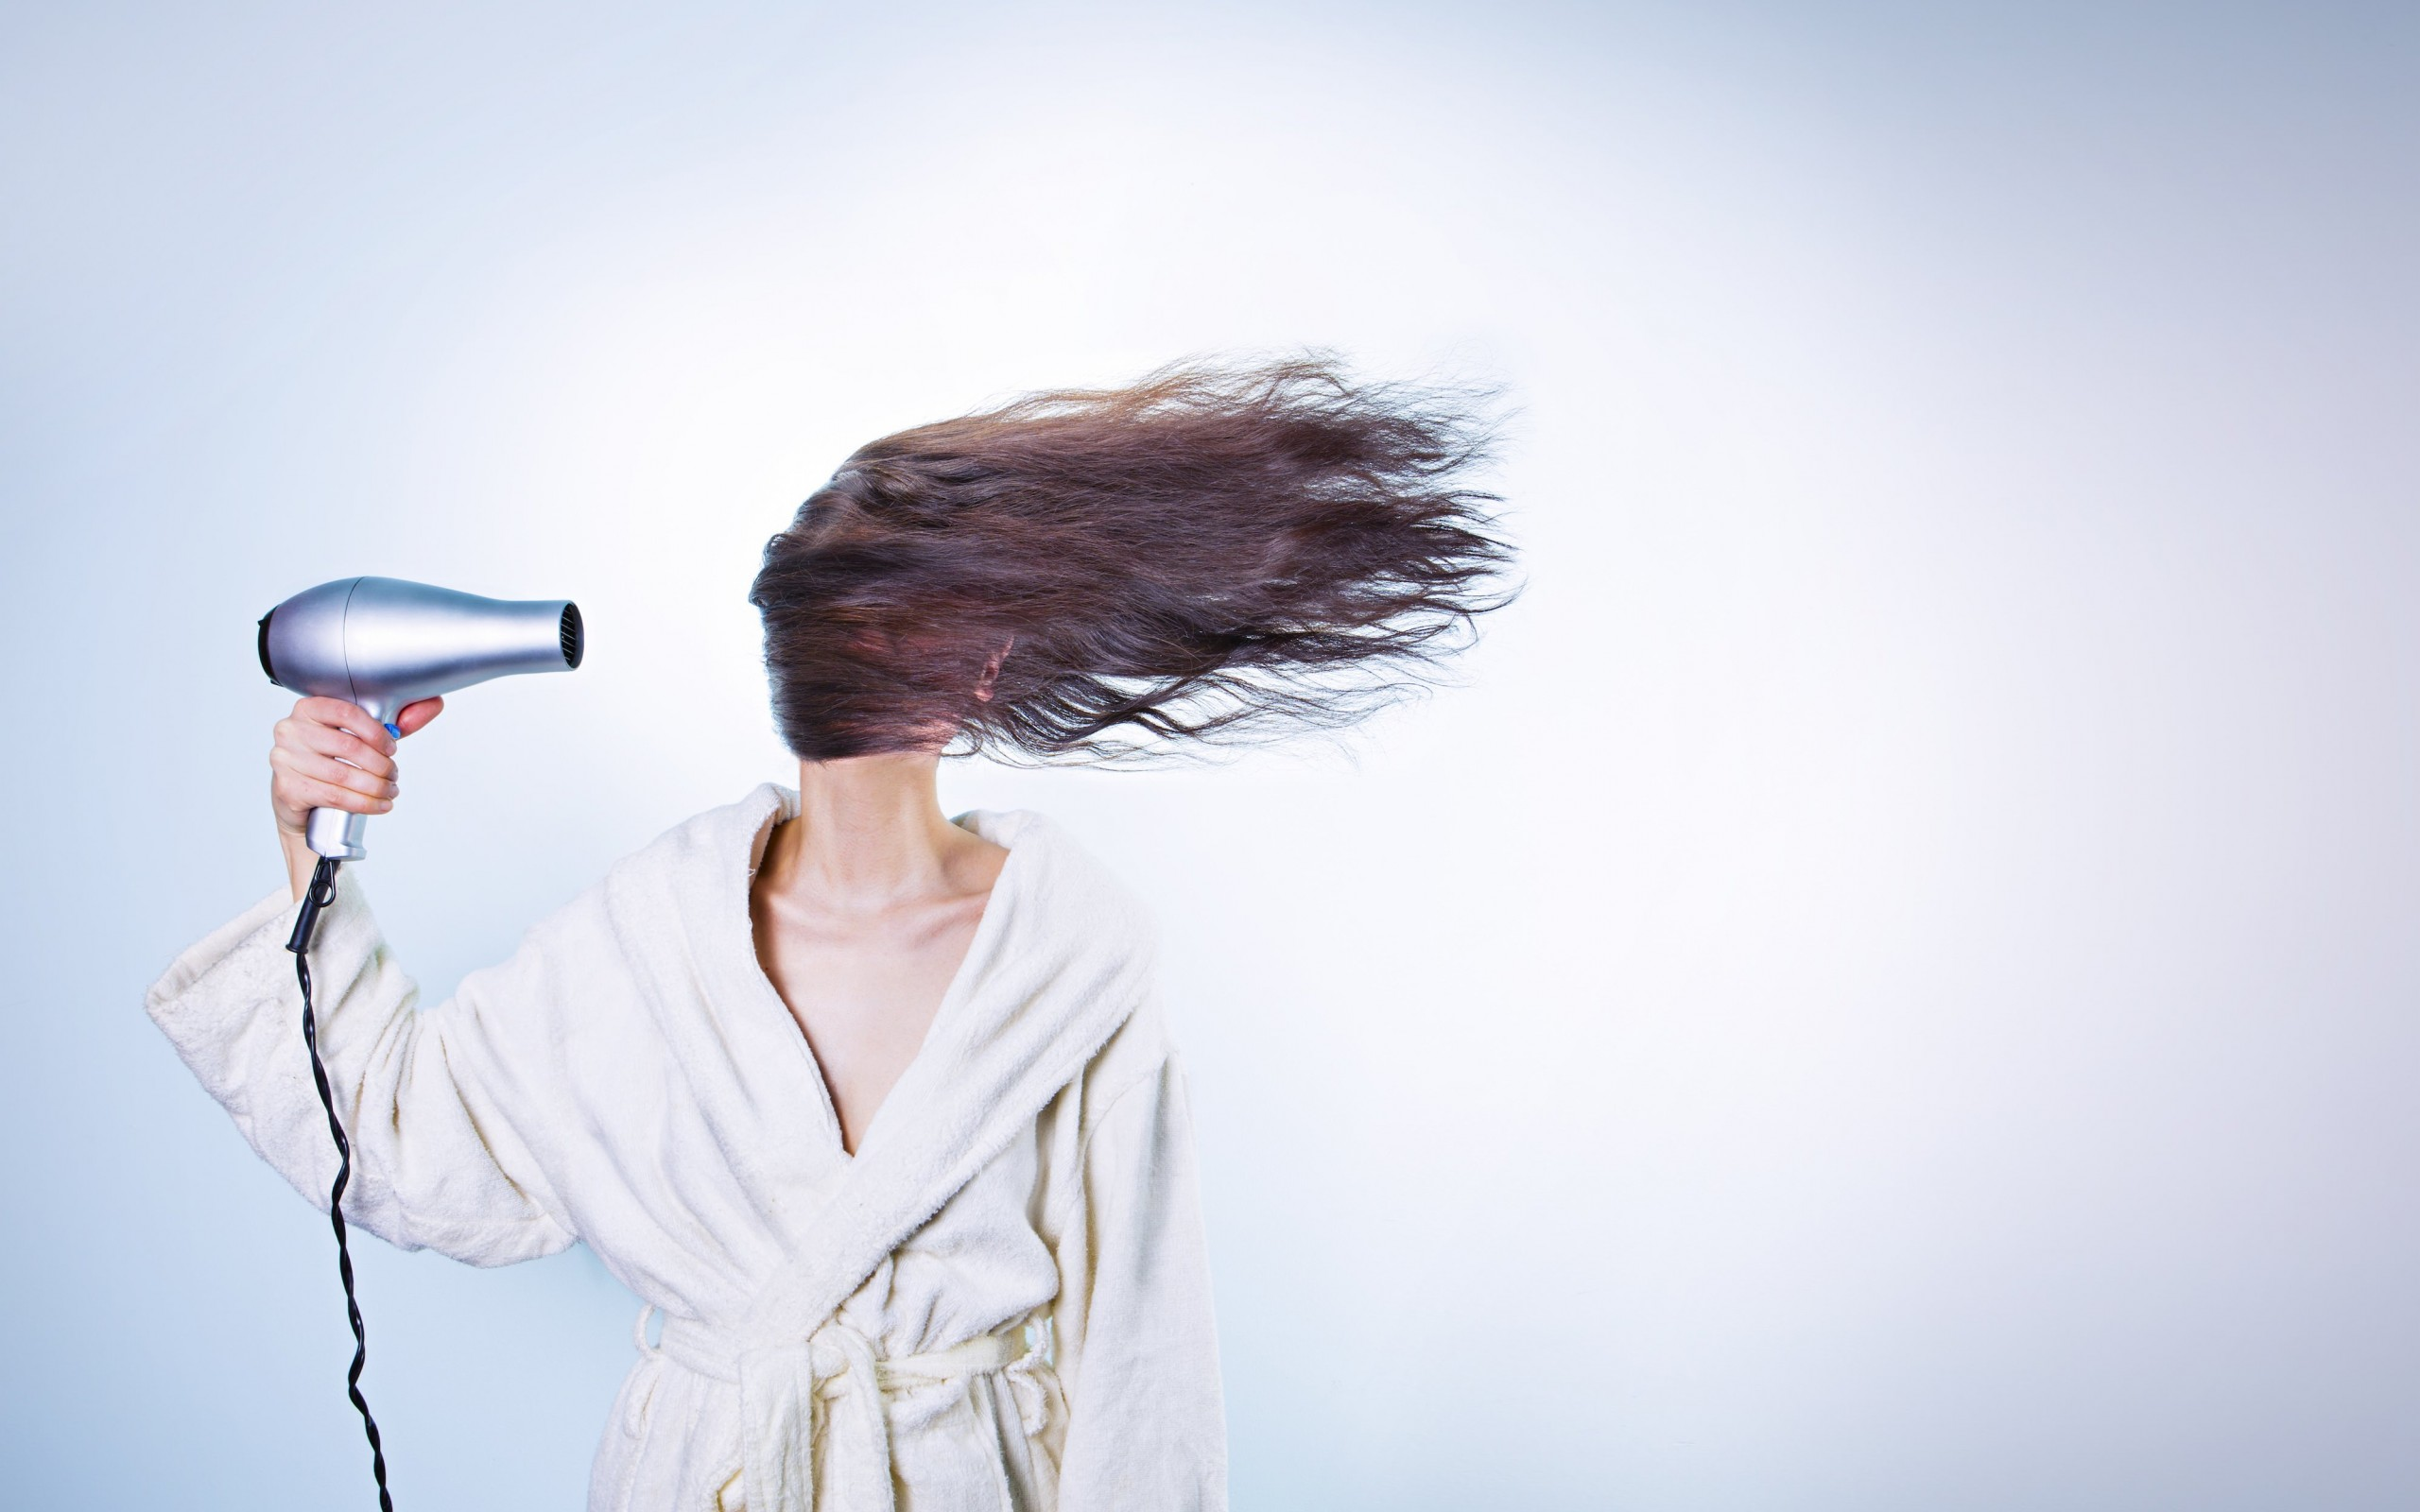 Powerful Hair Dryer Wallpaper for Desktop 2560x1600